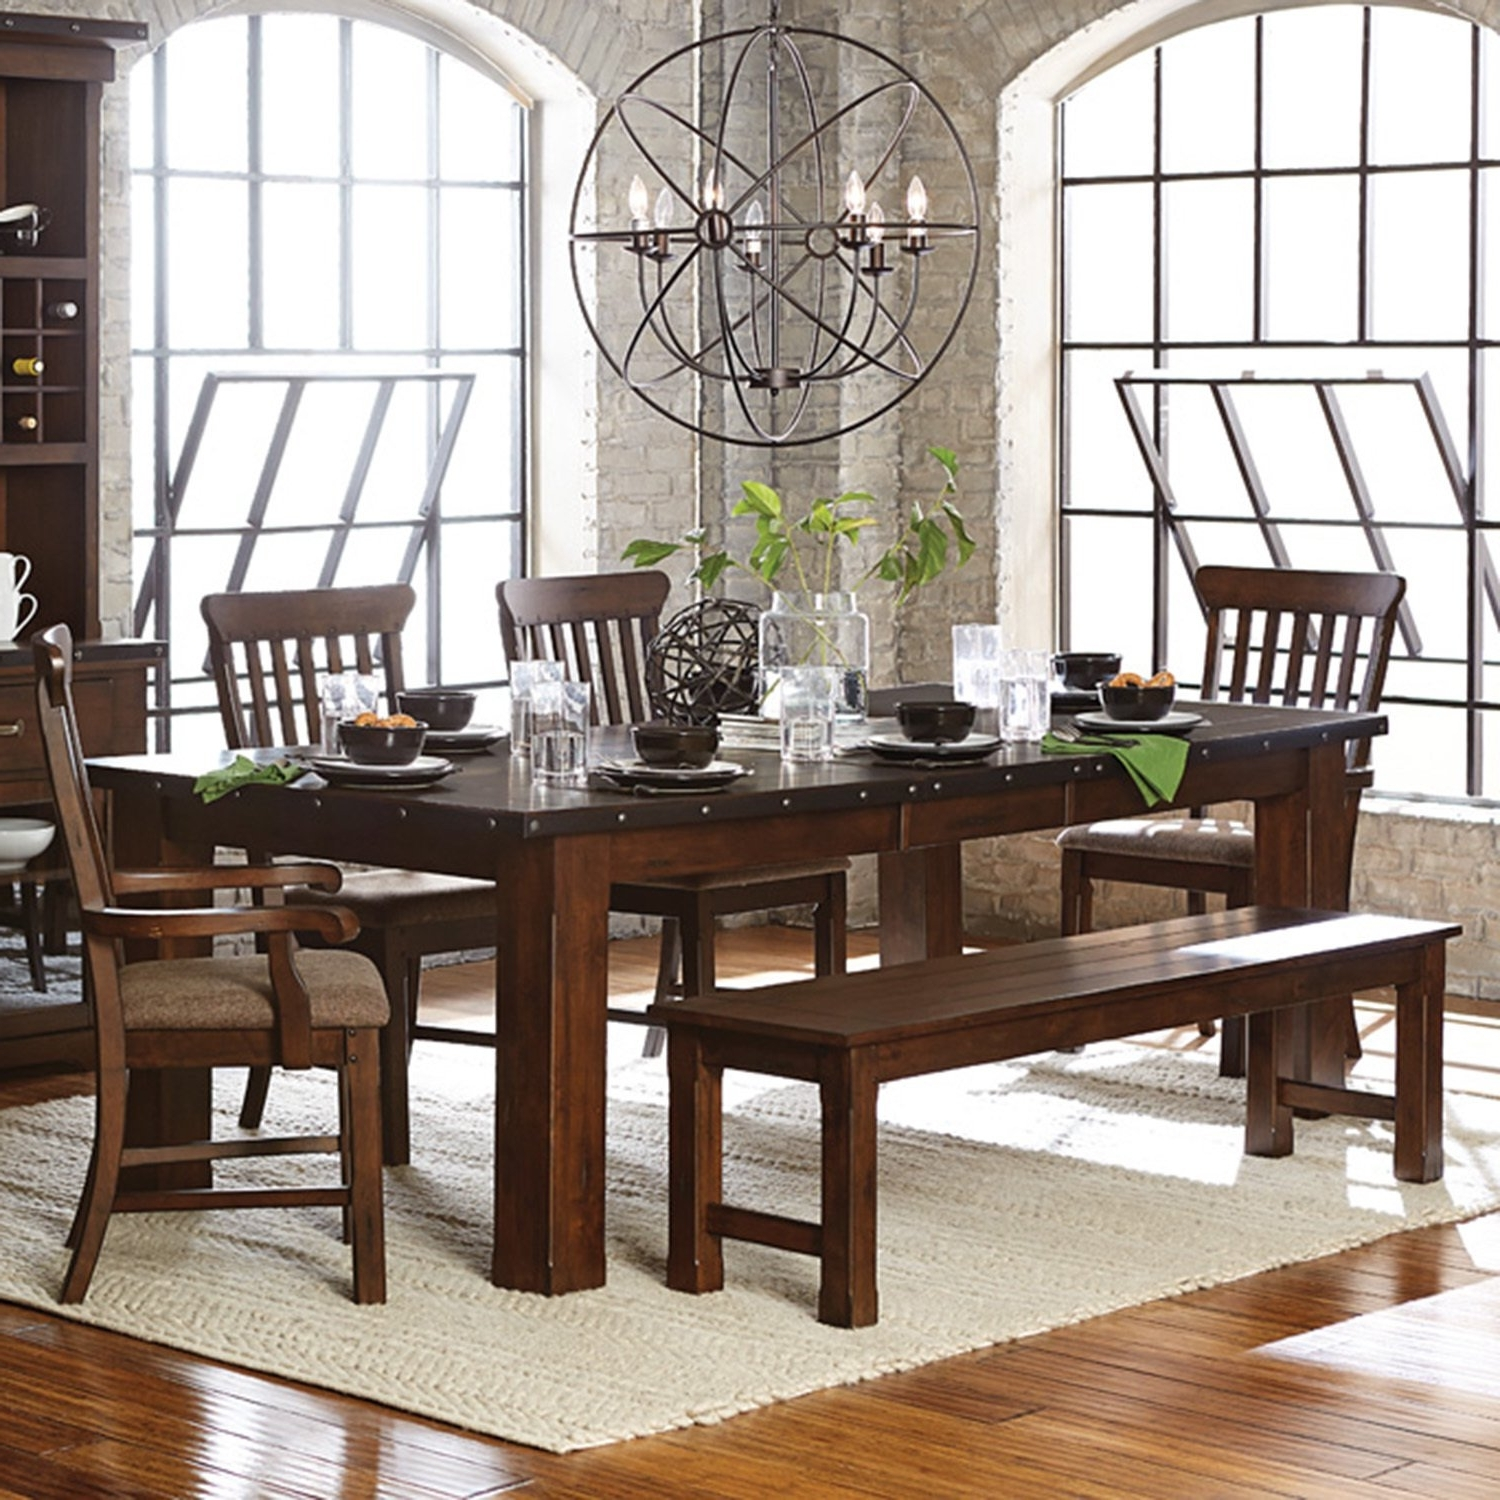 Most Recent Shop Norwood Antique Oak Finish Extending Table Dining Set – Free For Norwood 7 Piece Rectangular Extension Dining Sets With Bench & Uph Side Chairs (Gallery 7 of 25)